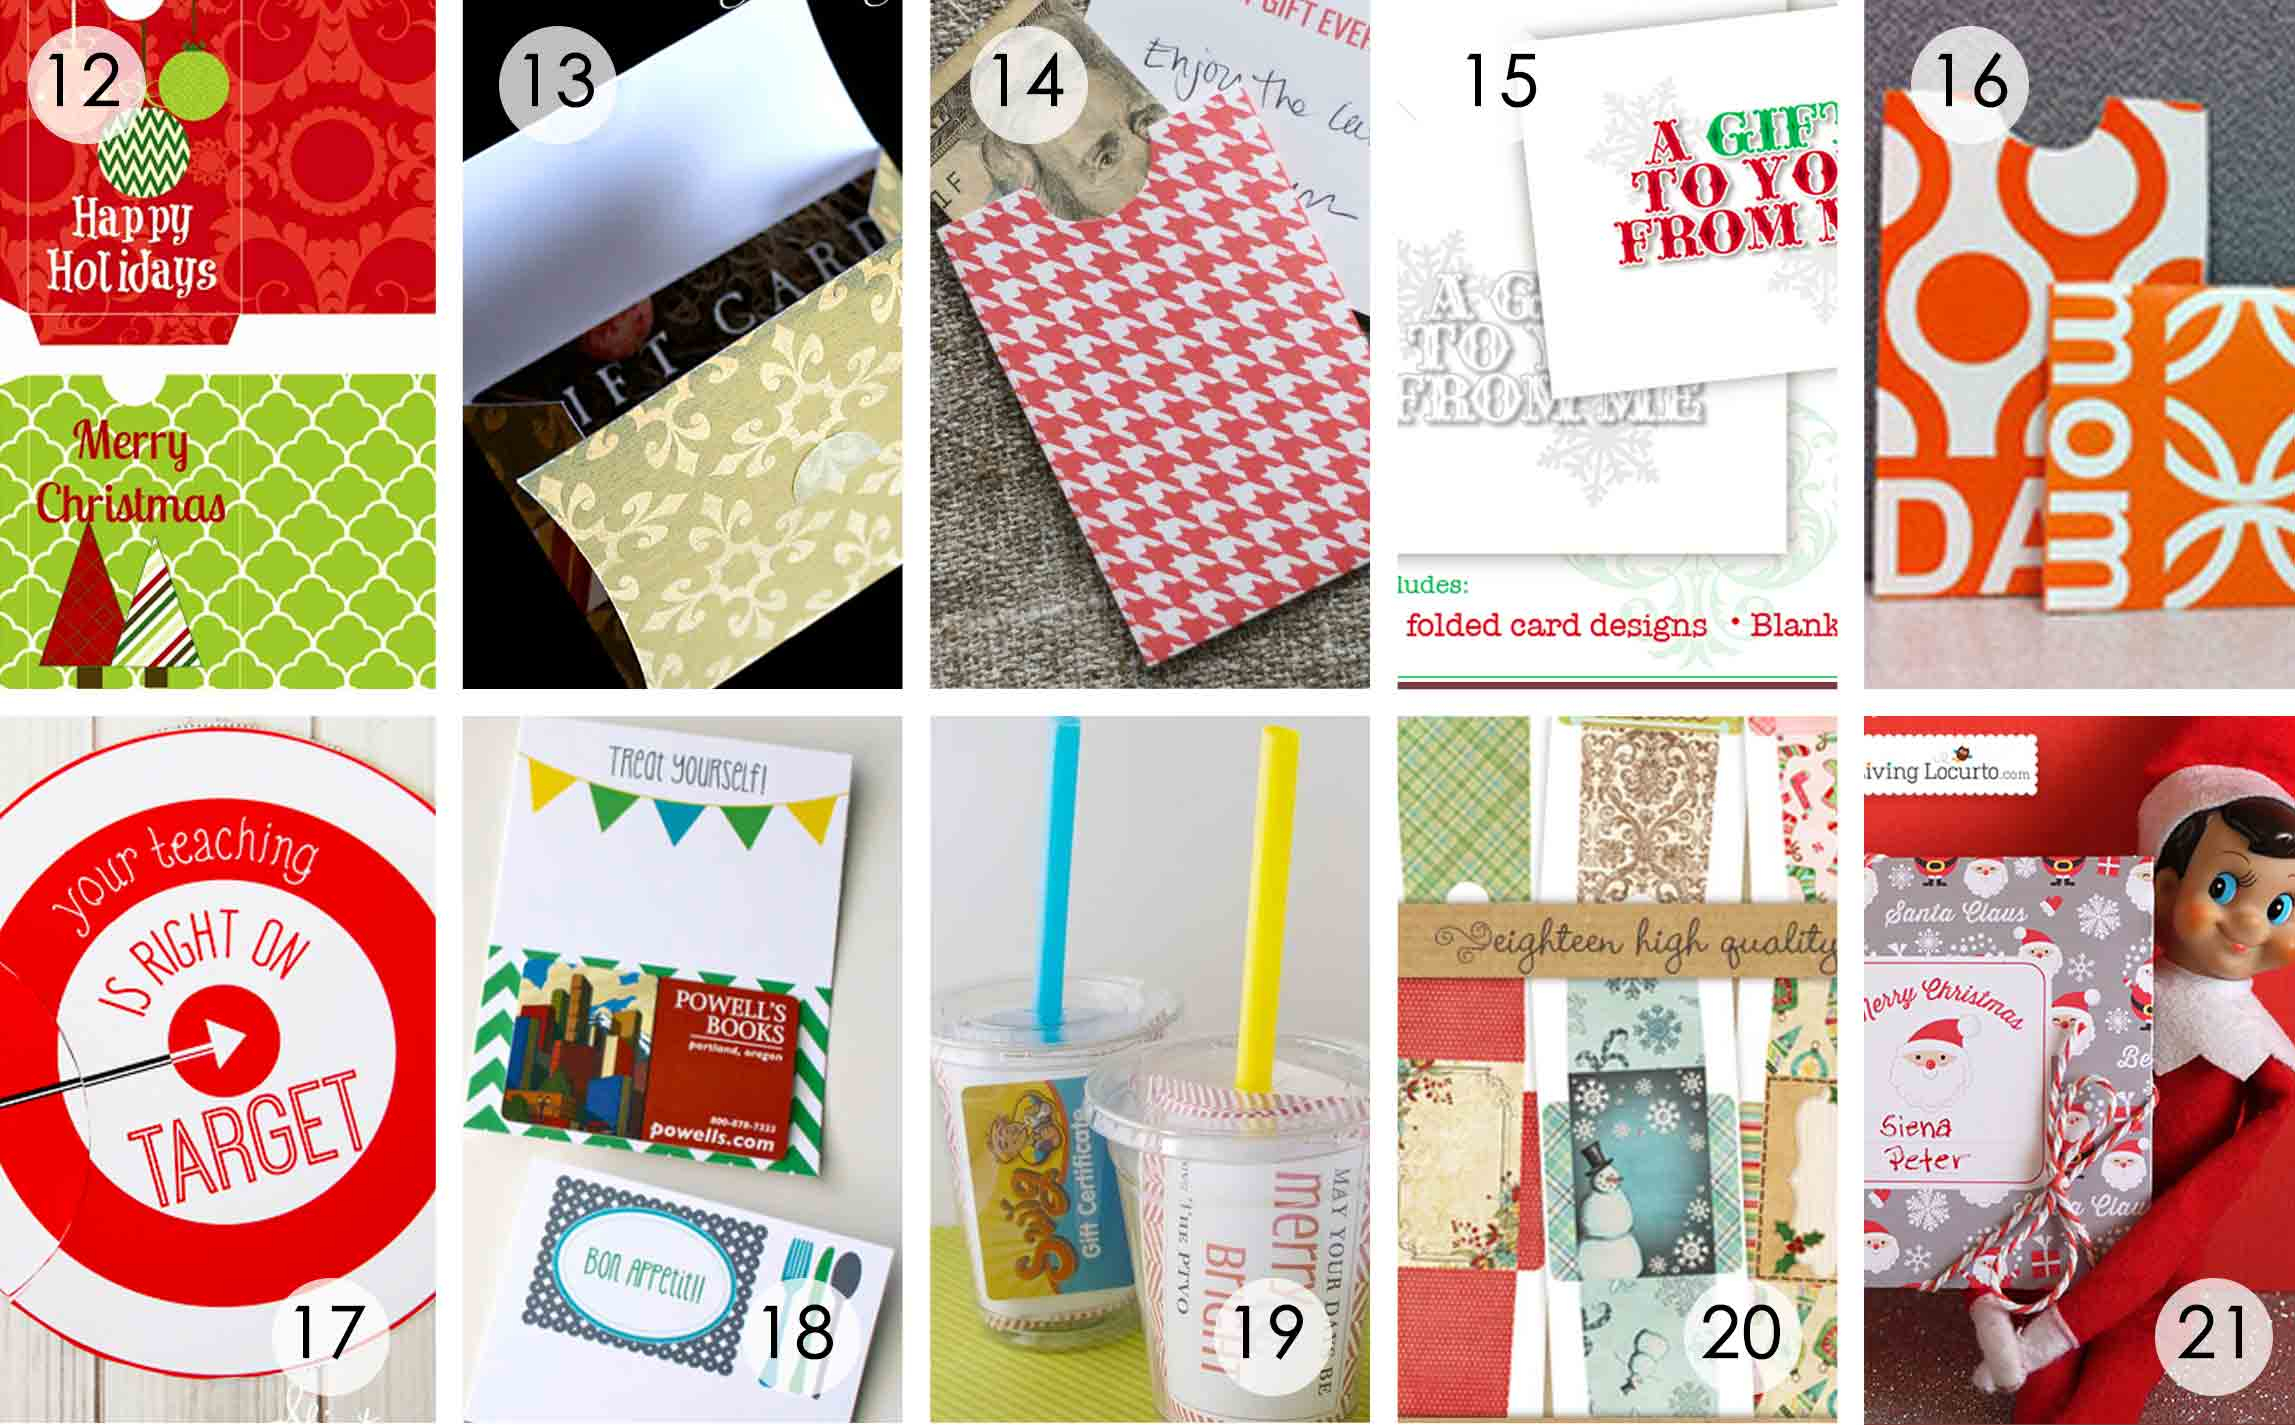 Over 50 Printable Gift Card Holders For The Holidays | Gcg - Free Printable Christmas Money Holders